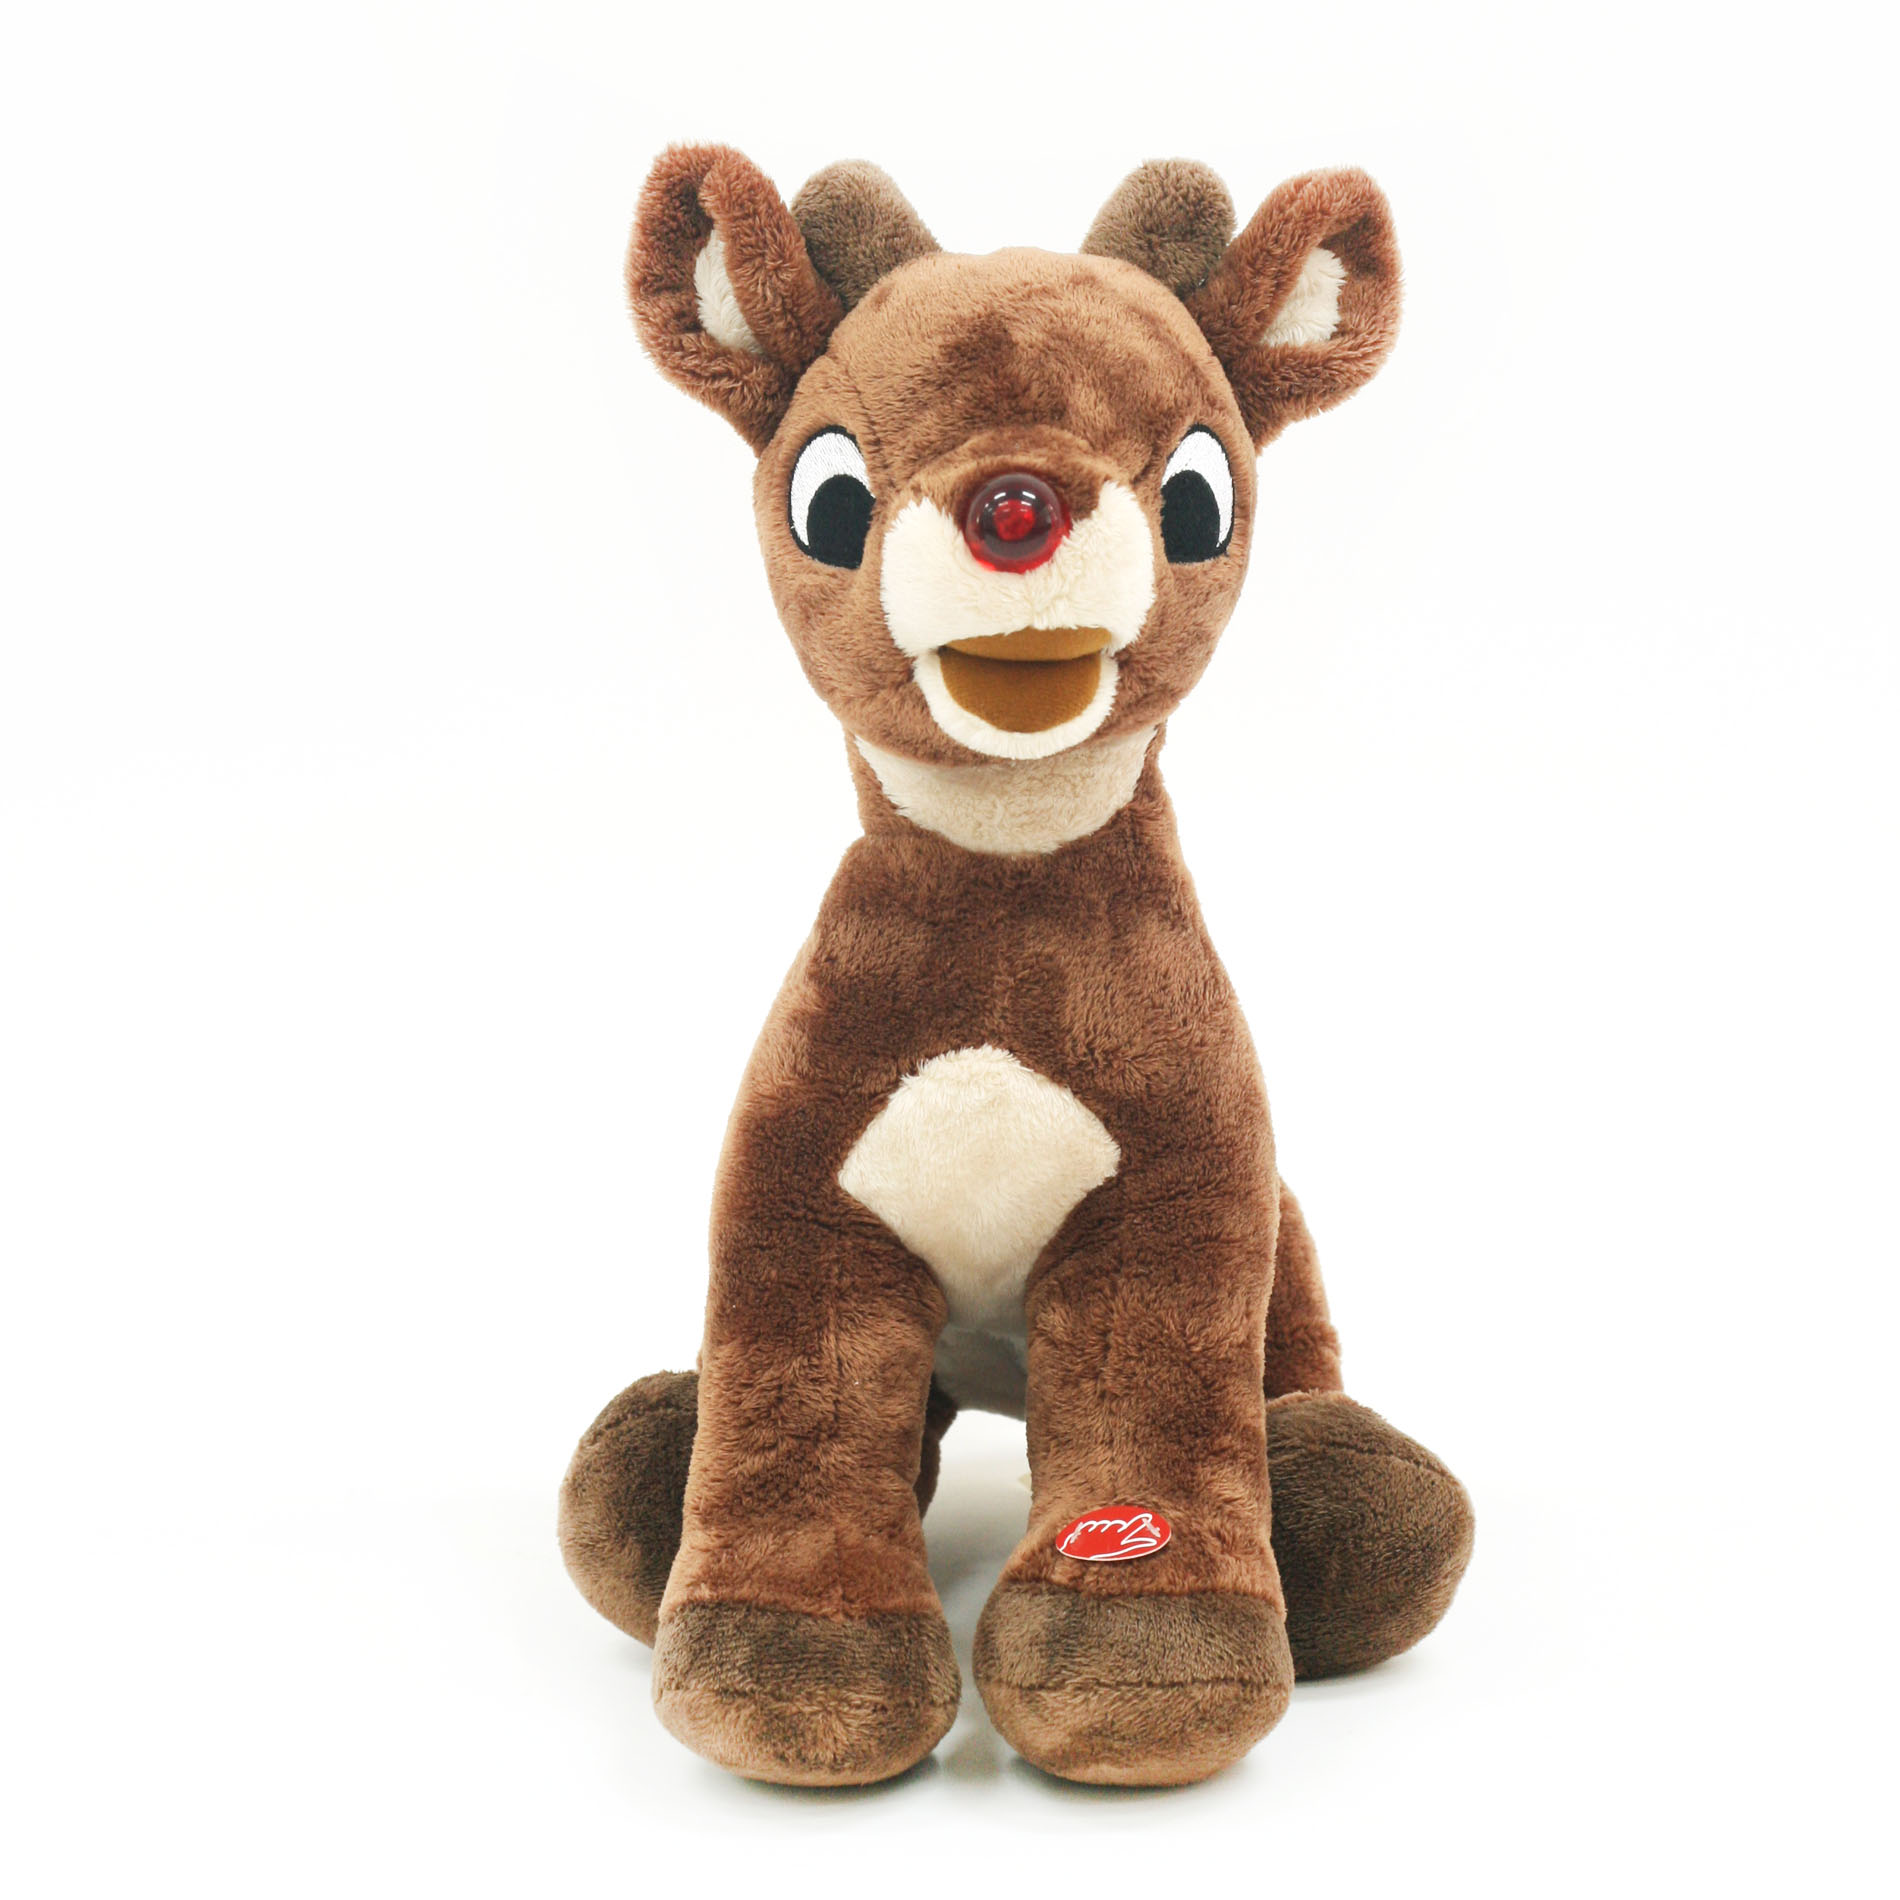 Rudolph The Red Nosed Reindeer 15 Musical Light Up Plush